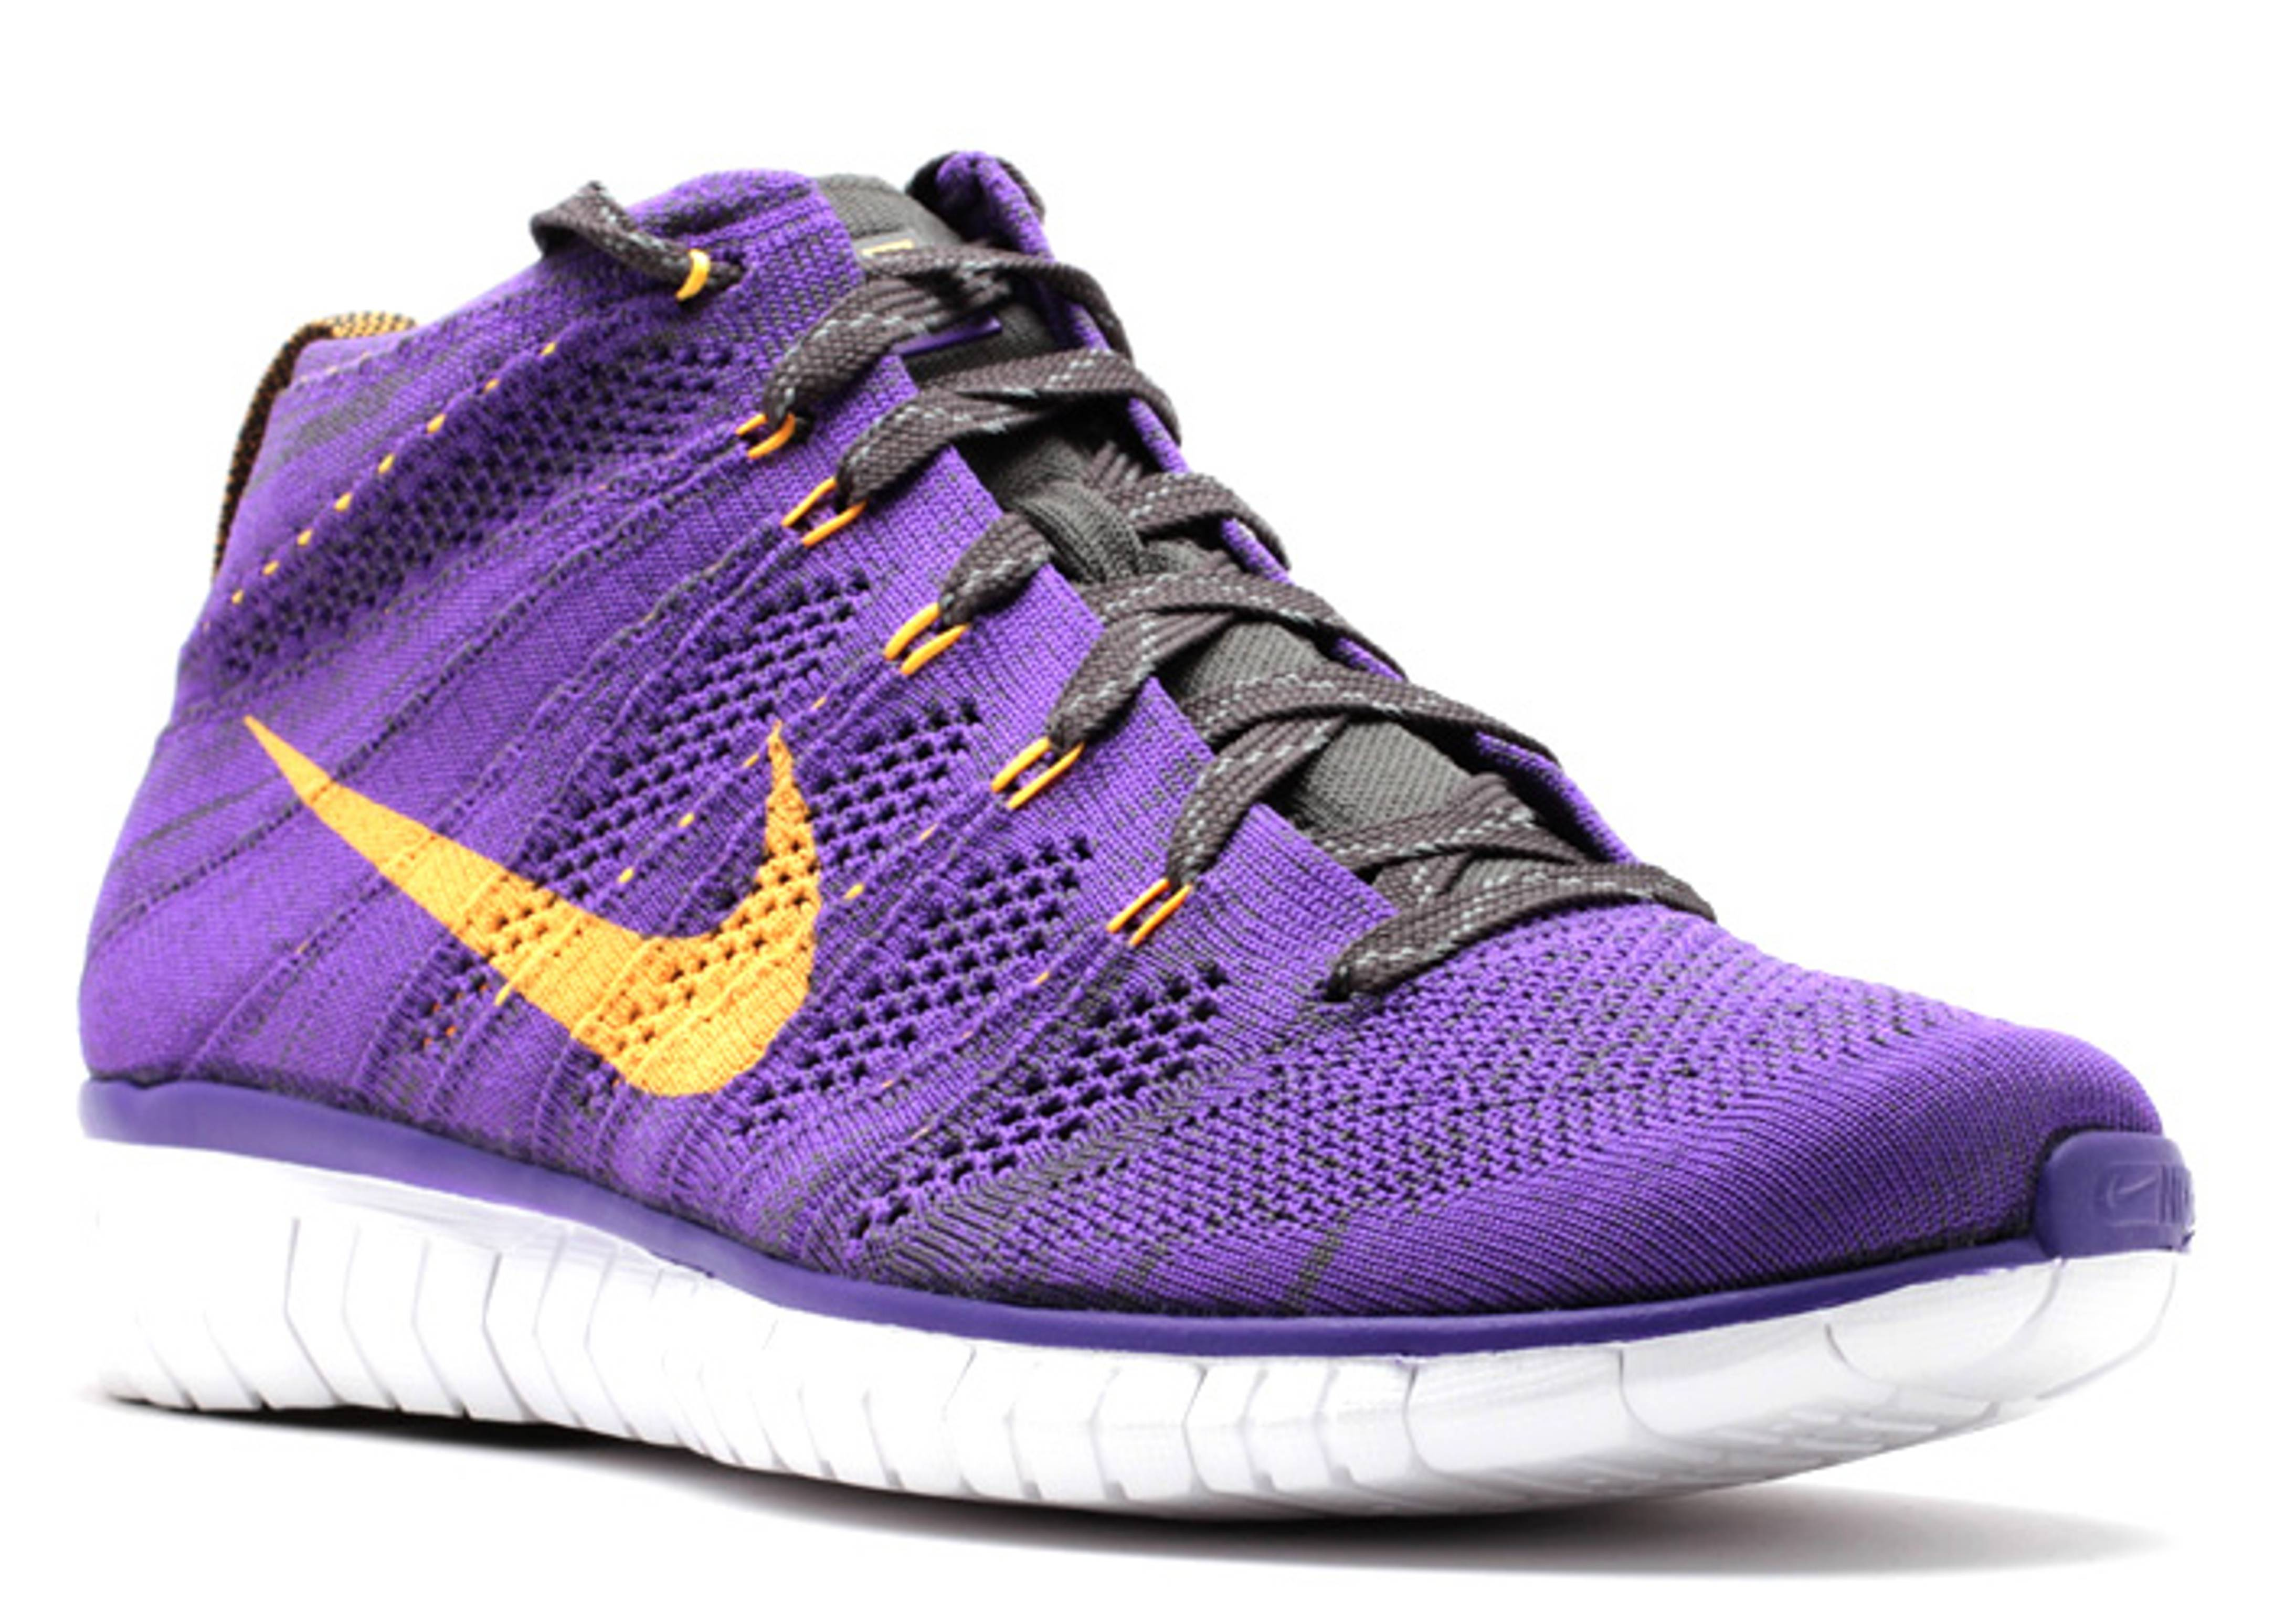 promo codes best quality online for sale Free Flyknit Chukka 'Hyper Grape'